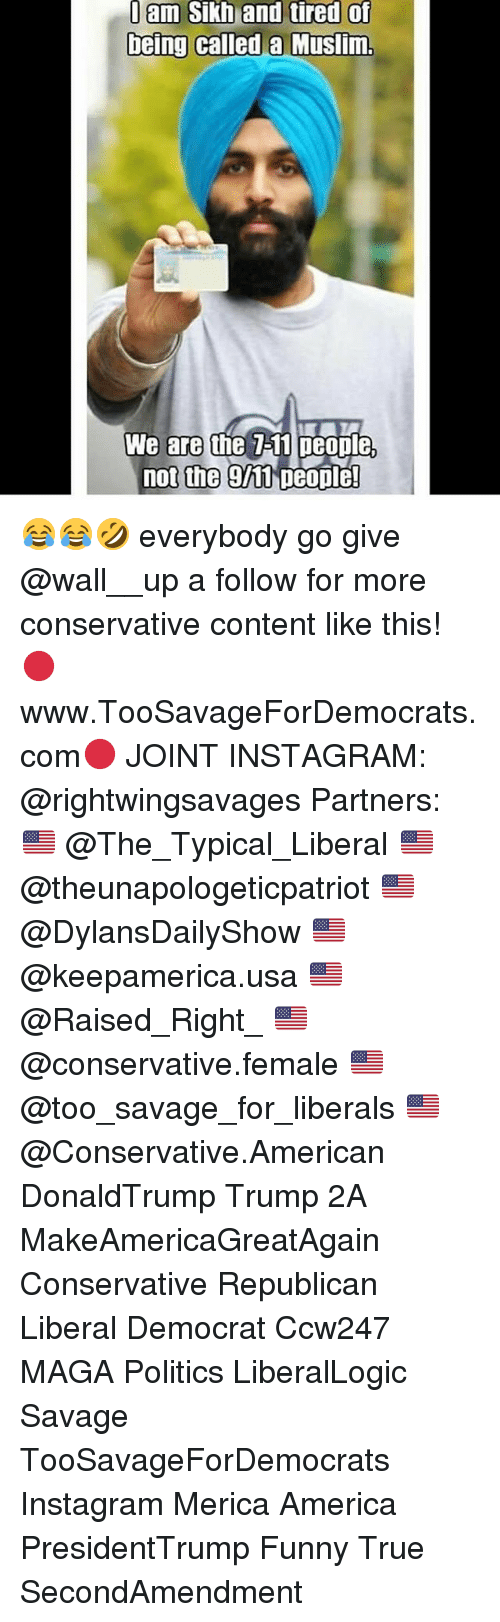 Everybody Go: am Sikh and tired of  being called a Muslim.  We are thhe 7-11 people,  not the 911 Deople! 😂😂🤣 everybody go give @wall__up a follow for more conservative content like this! 🔴www.TooSavageForDemocrats.com🔴 JOINT INSTAGRAM: @rightwingsavages Partners: 🇺🇸 @The_Typical_Liberal 🇺🇸 @theunapologeticpatriot 🇺🇸 @DylansDailyShow 🇺🇸 @keepamerica.usa 🇺🇸@Raised_Right_ 🇺🇸@conservative.female 🇺🇸 @too_savage_for_liberals 🇺🇸 @Conservative.American DonaldTrump Trump 2A MakeAmericaGreatAgain Conservative Republican Liberal Democrat Ccw247 MAGA Politics LiberalLogic Savage TooSavageForDemocrats Instagram Merica America PresidentTrump Funny True SecondAmendment